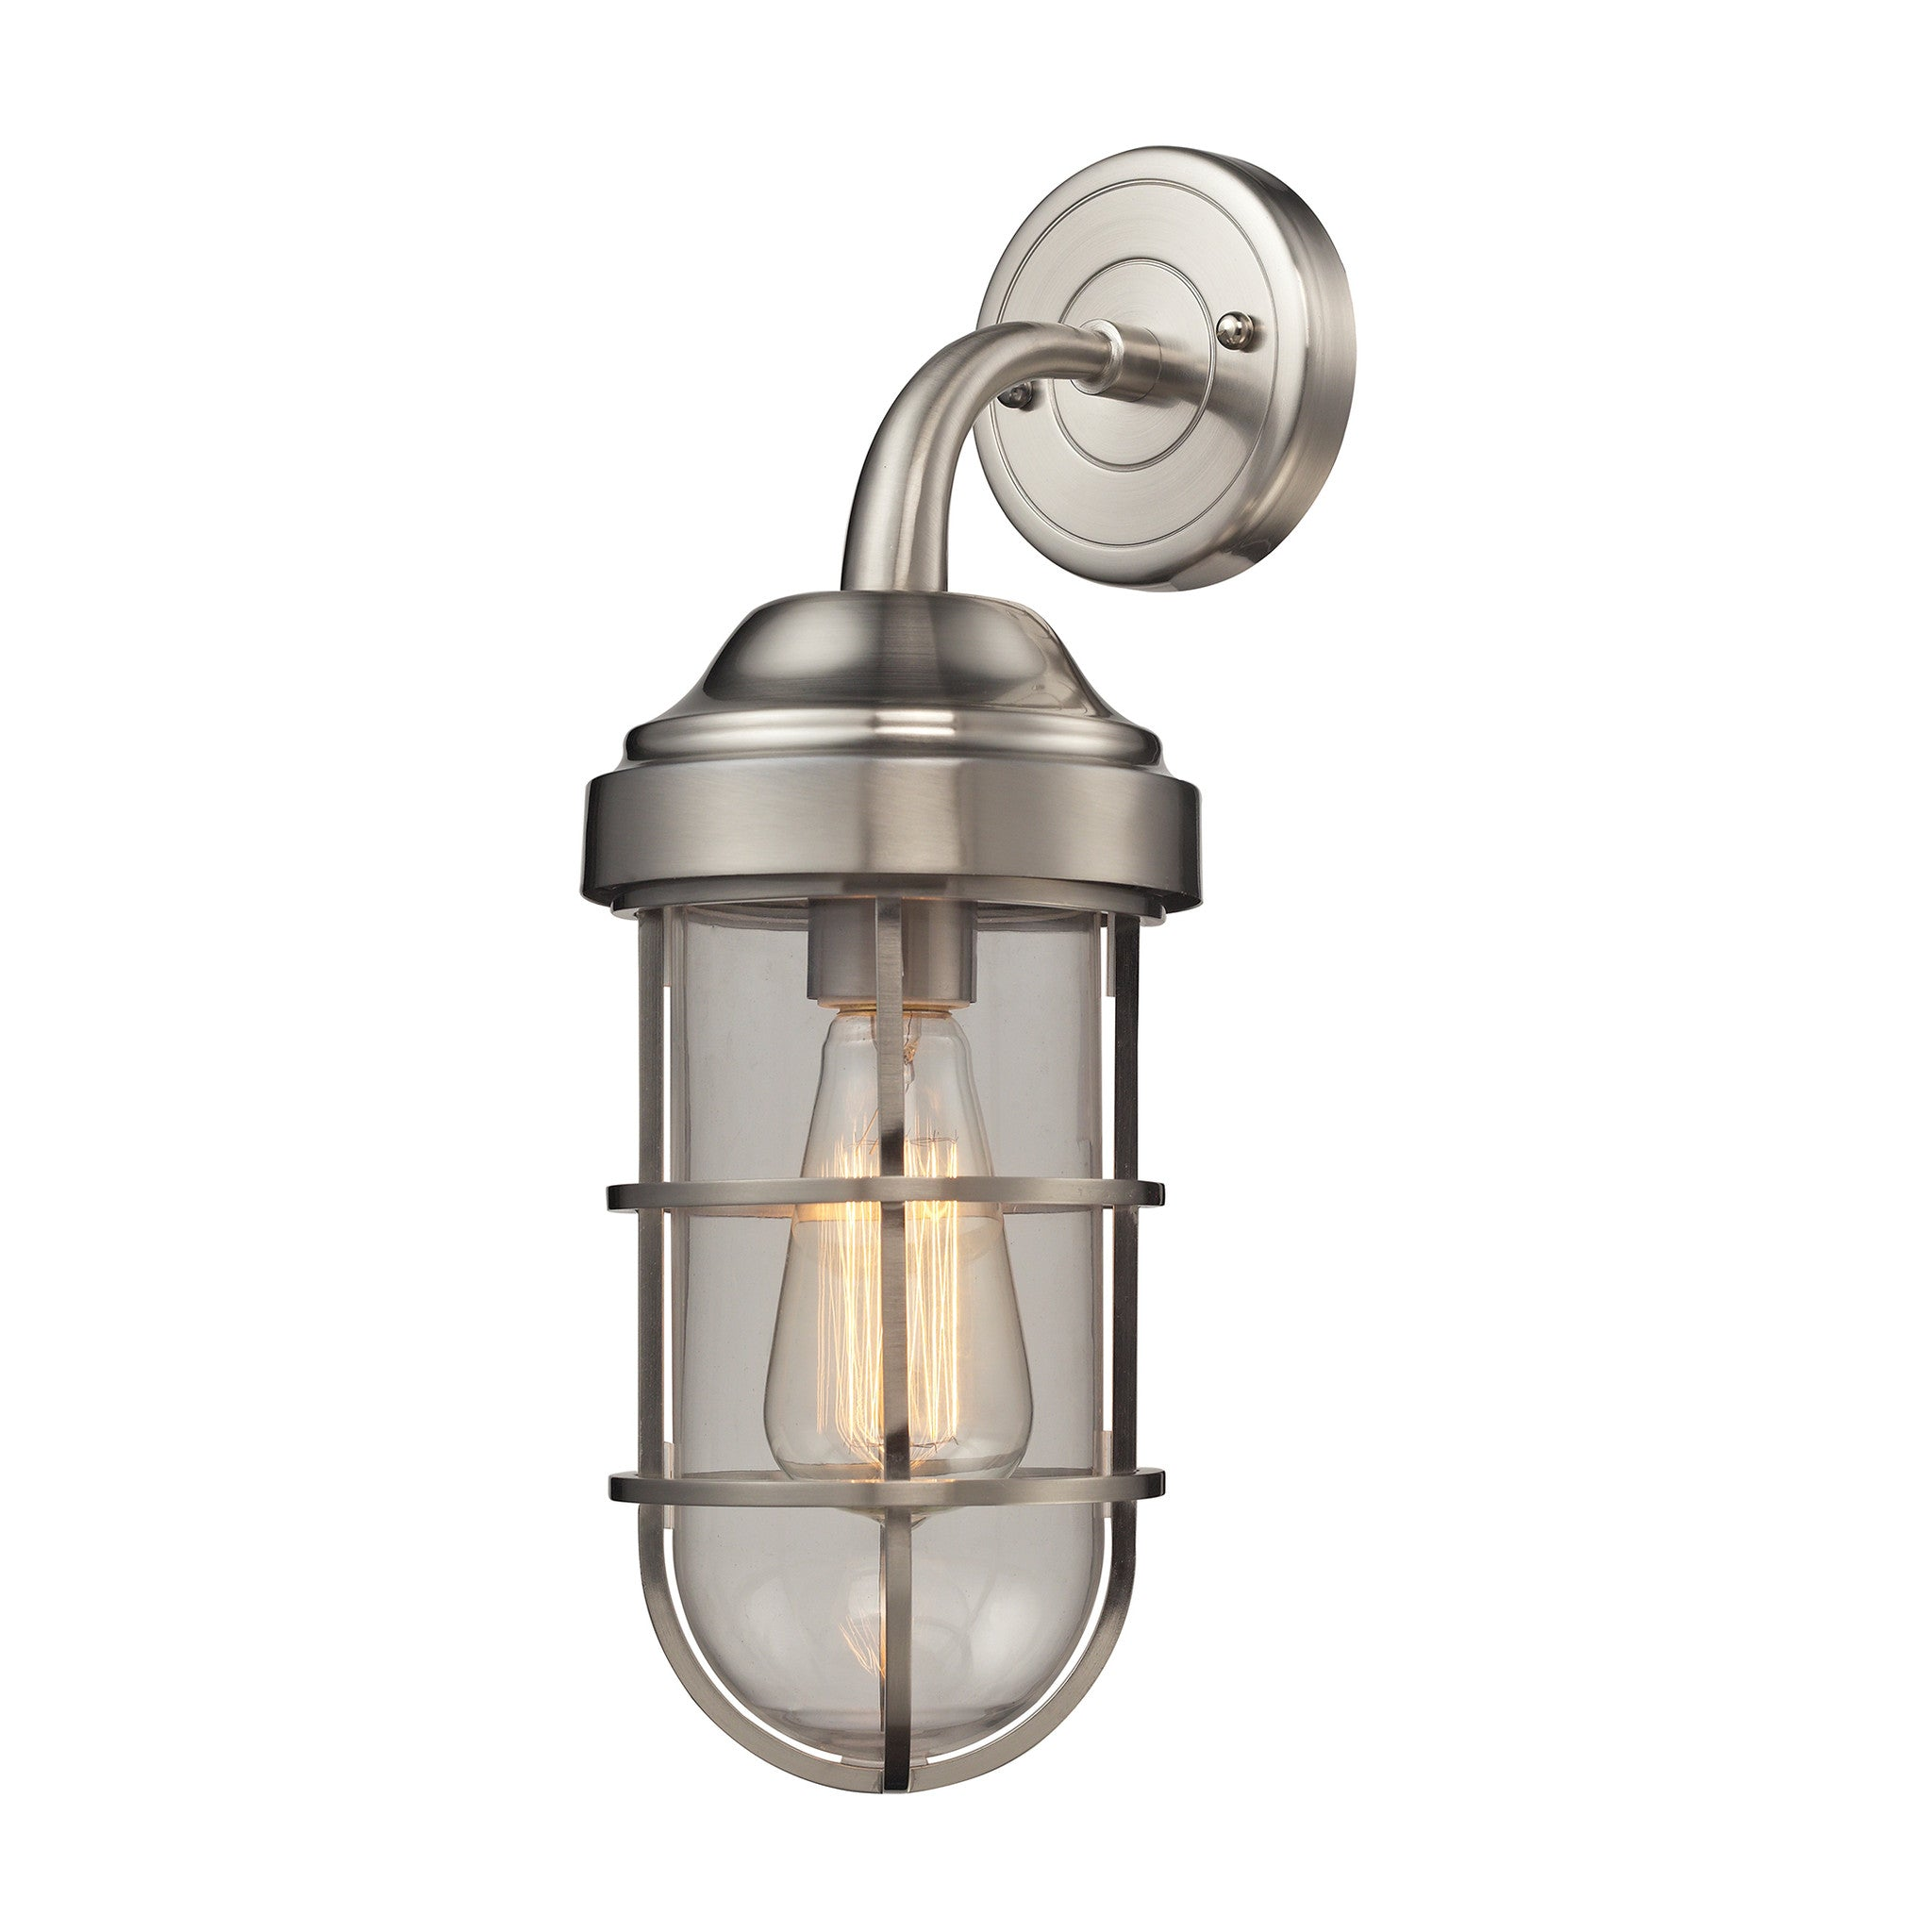 Seaport 1 Light Wall Sconce in Satin Nickel by Elk Lighting 66355-1